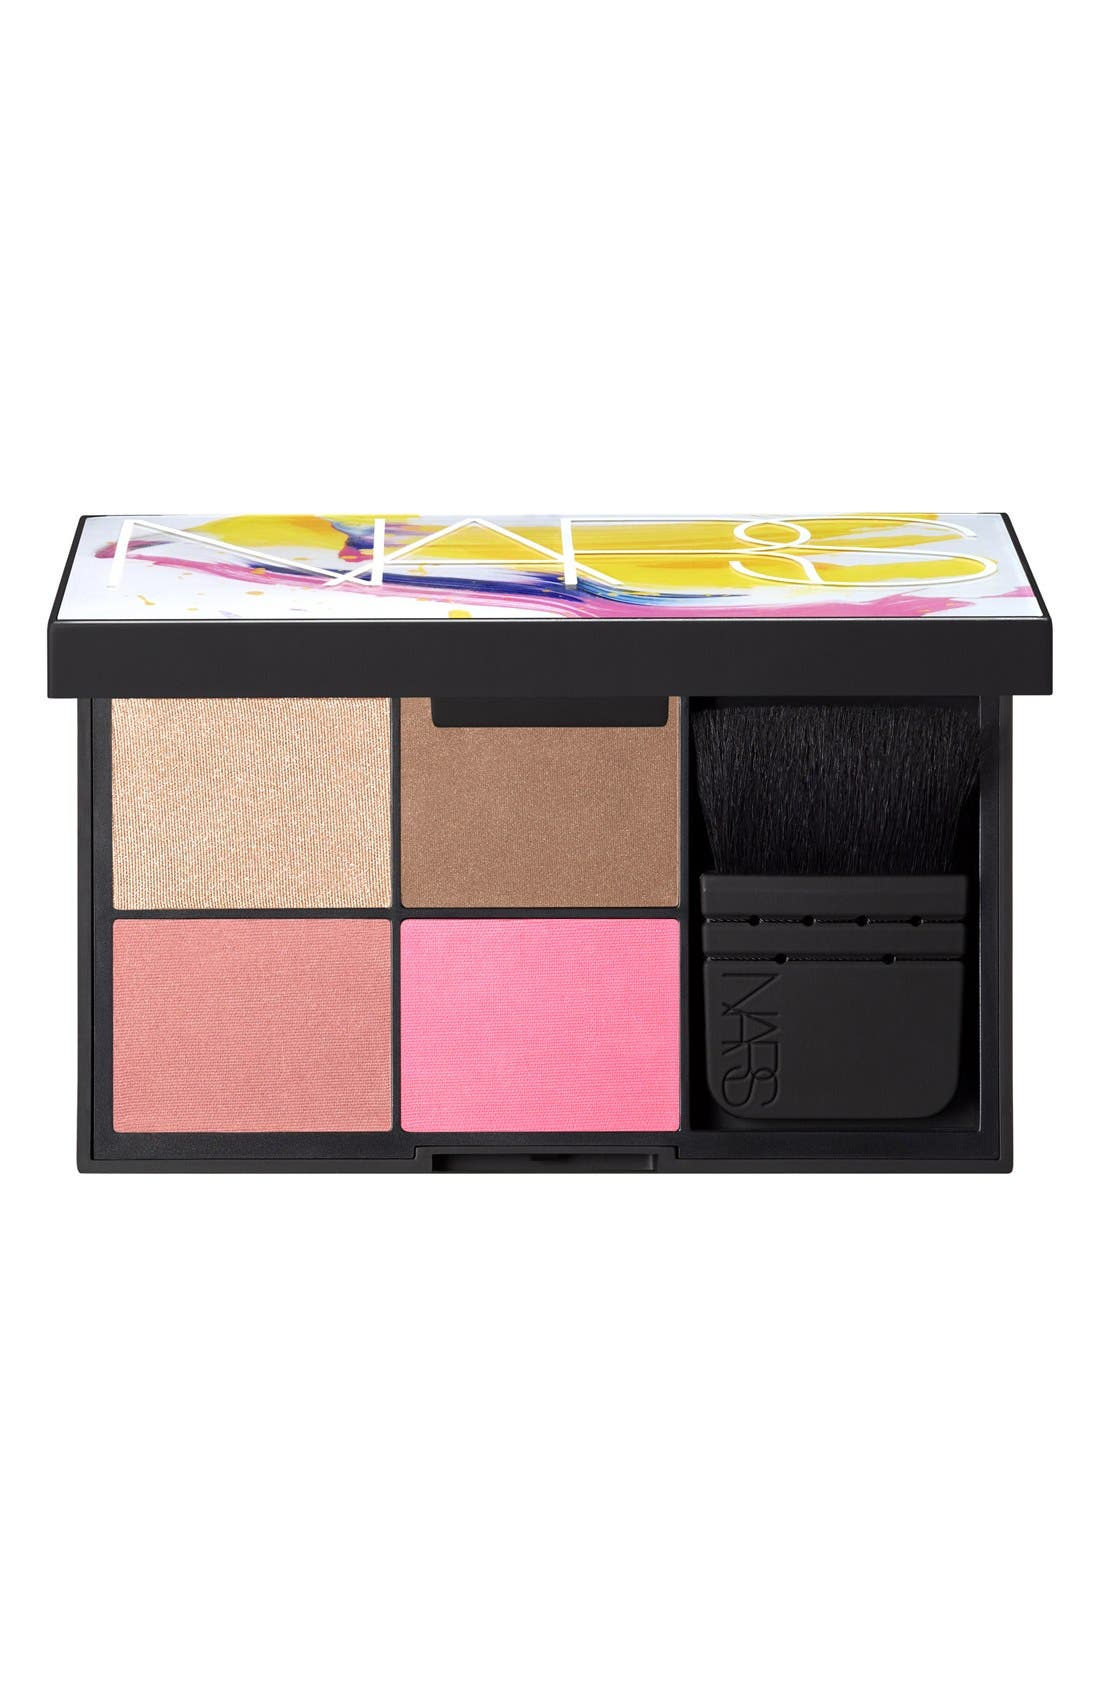 'Blame it on NARS' Cheek Palette,                             Main thumbnail 1, color,                             650